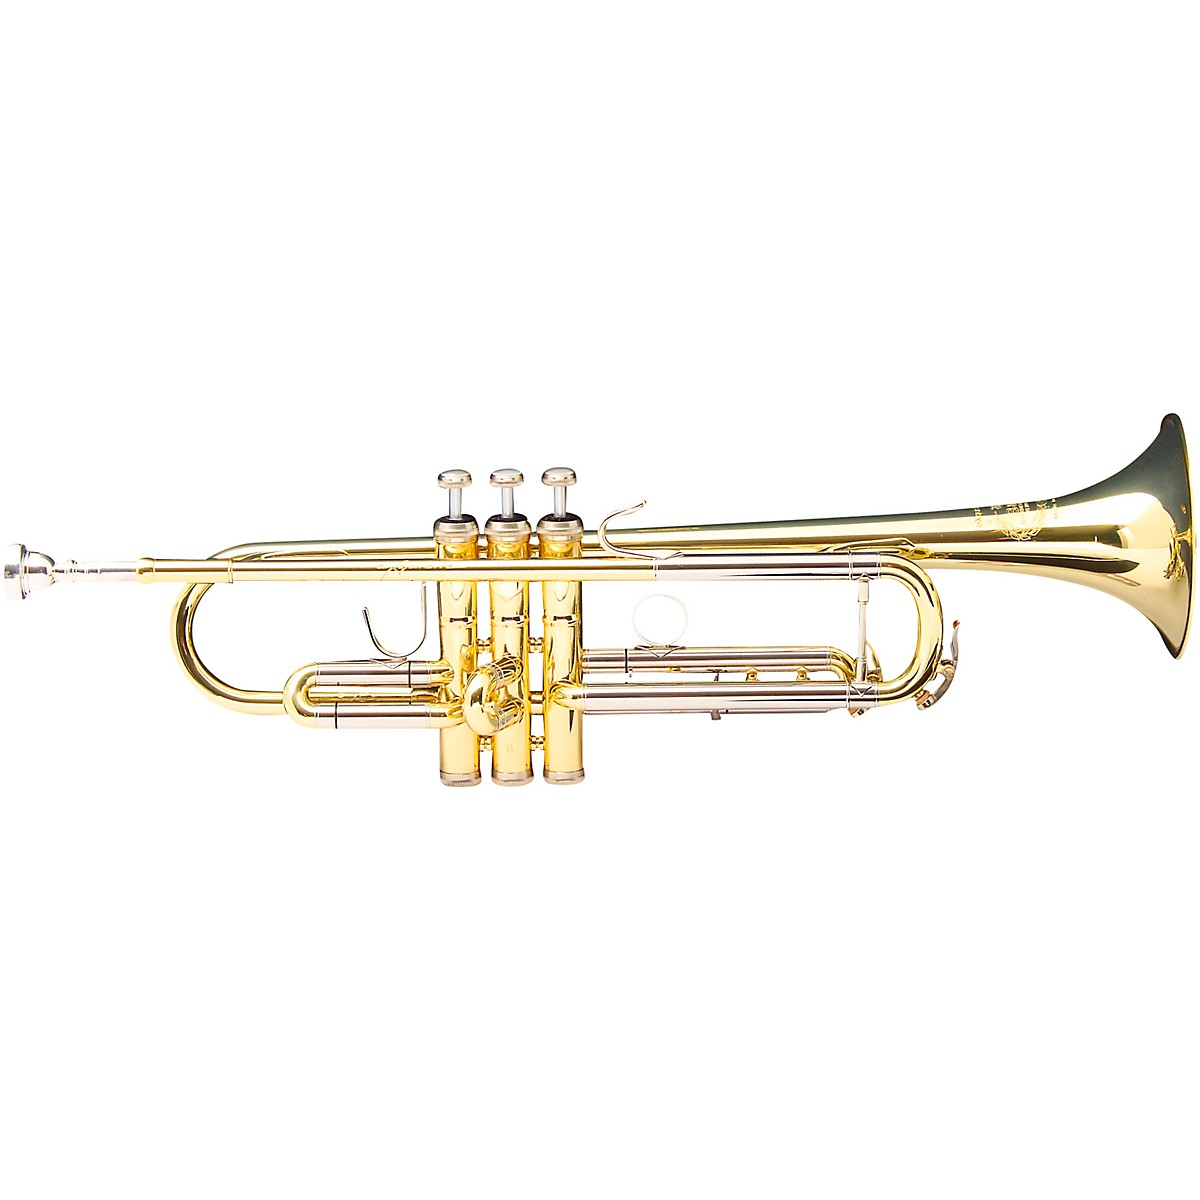 B&S EXB eXquisite Series Bb Trumpet